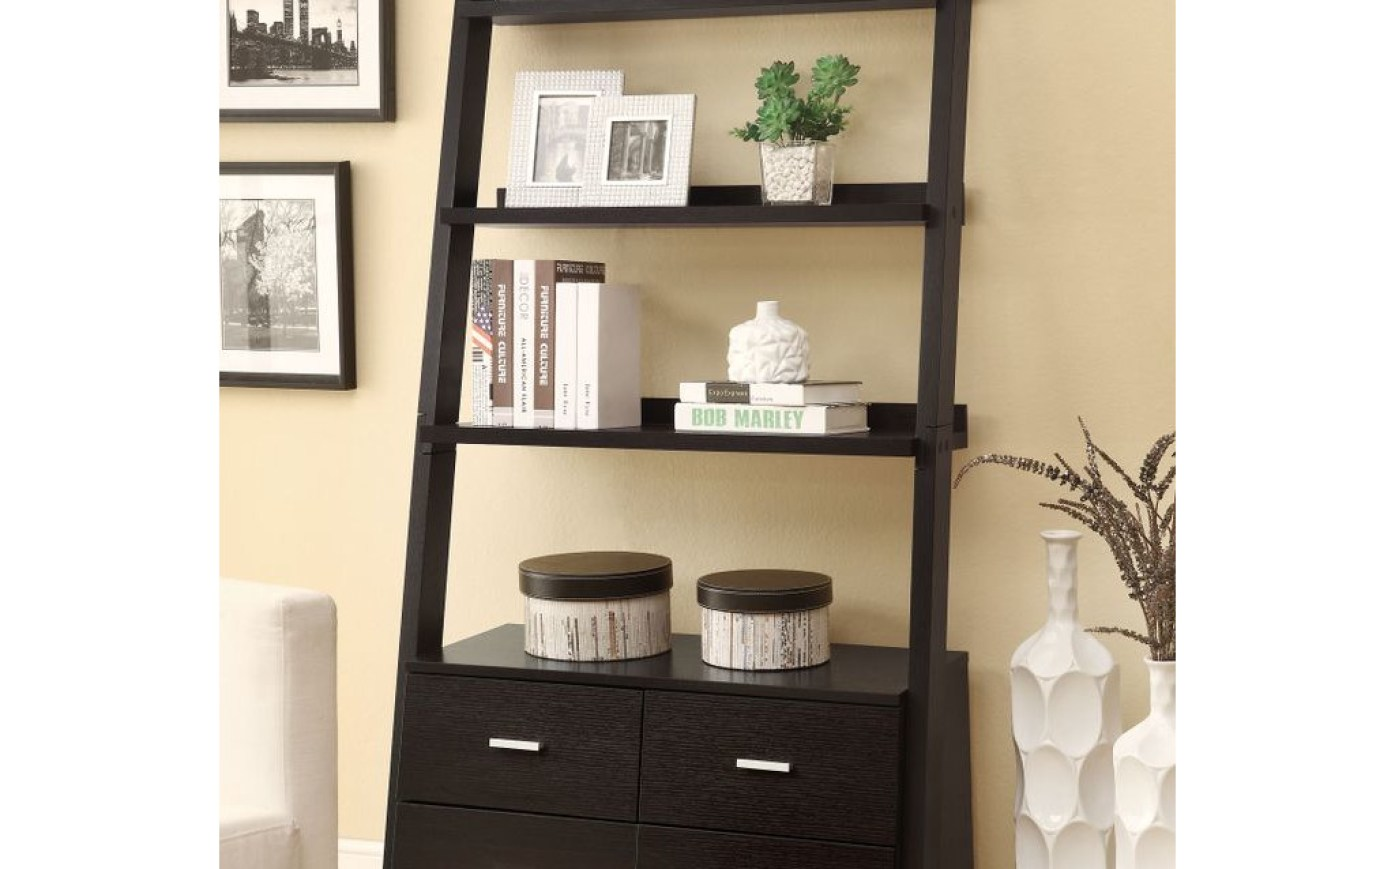 Walmart Shelving Unit | Walmart Shelving | Glass Shelves Walmart